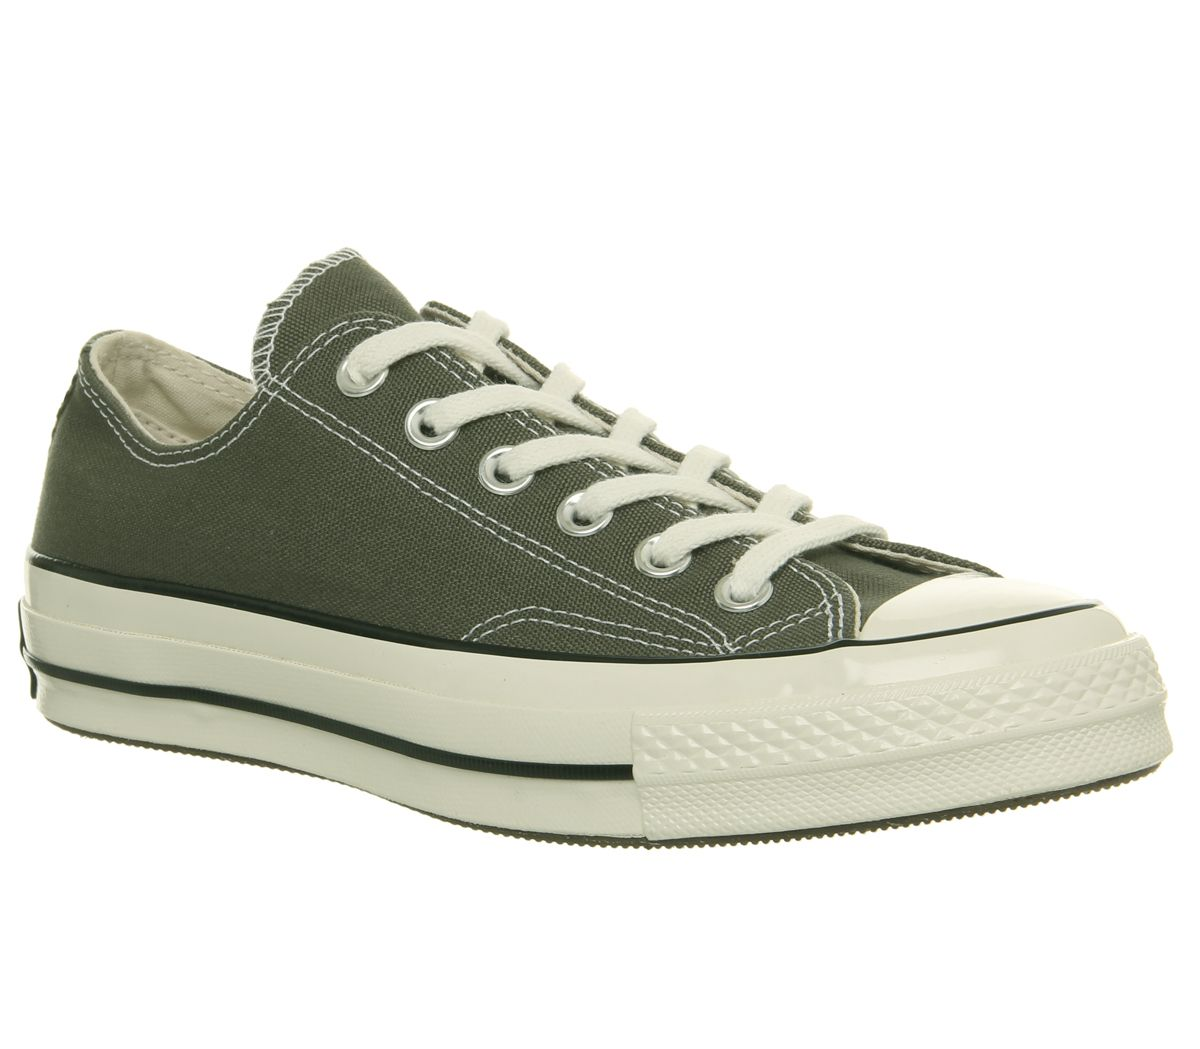 7367f5cb5859 Converse All Star Ox 70 s Trainers Field Surplus Black - His trainers